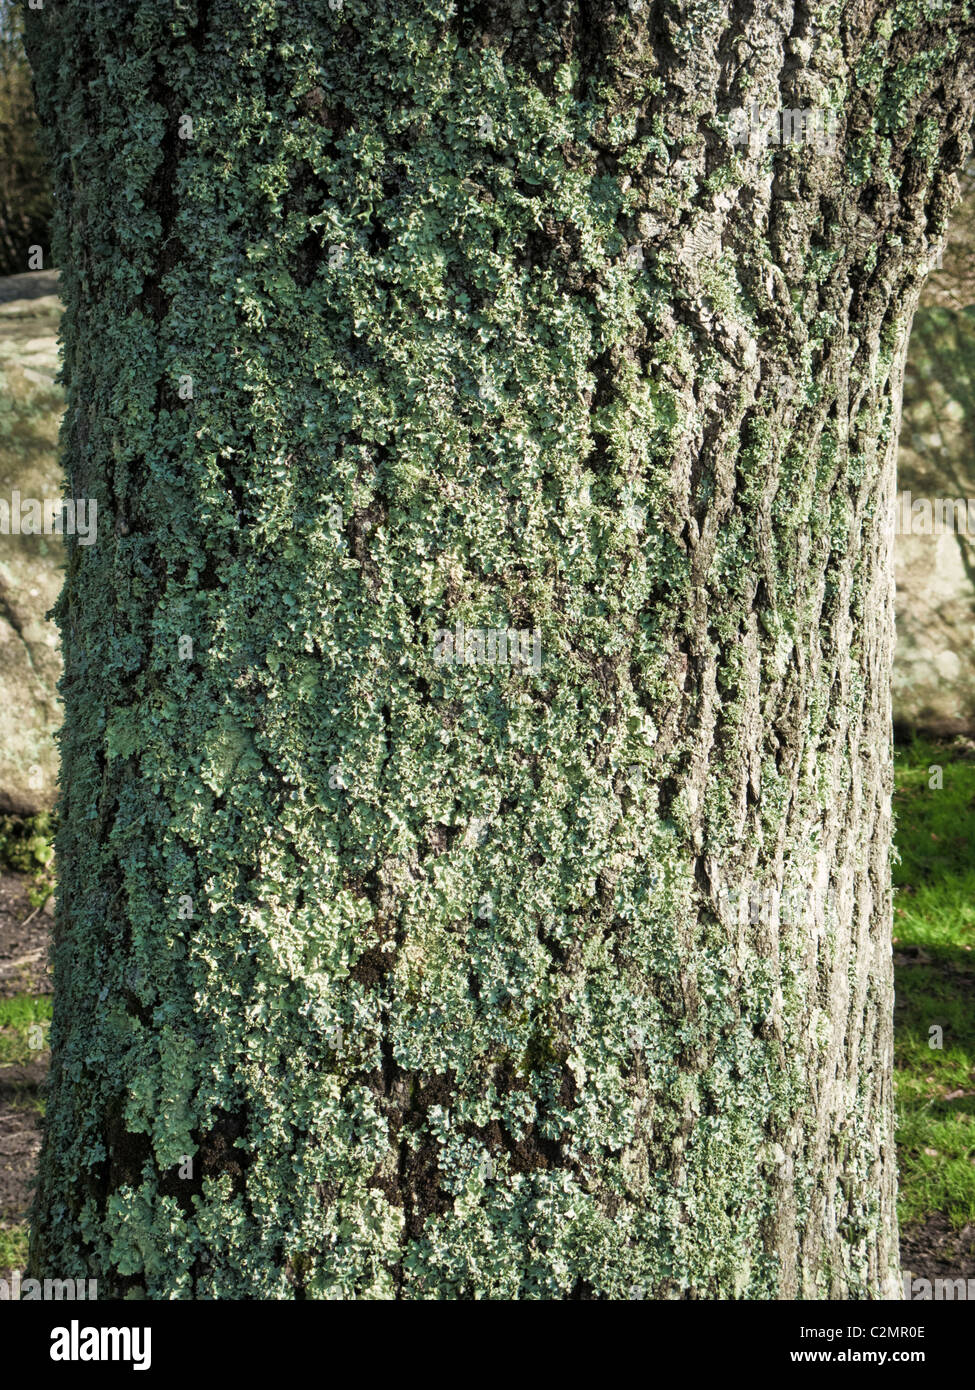 Lichen growing on tree bark close up - Stock Image